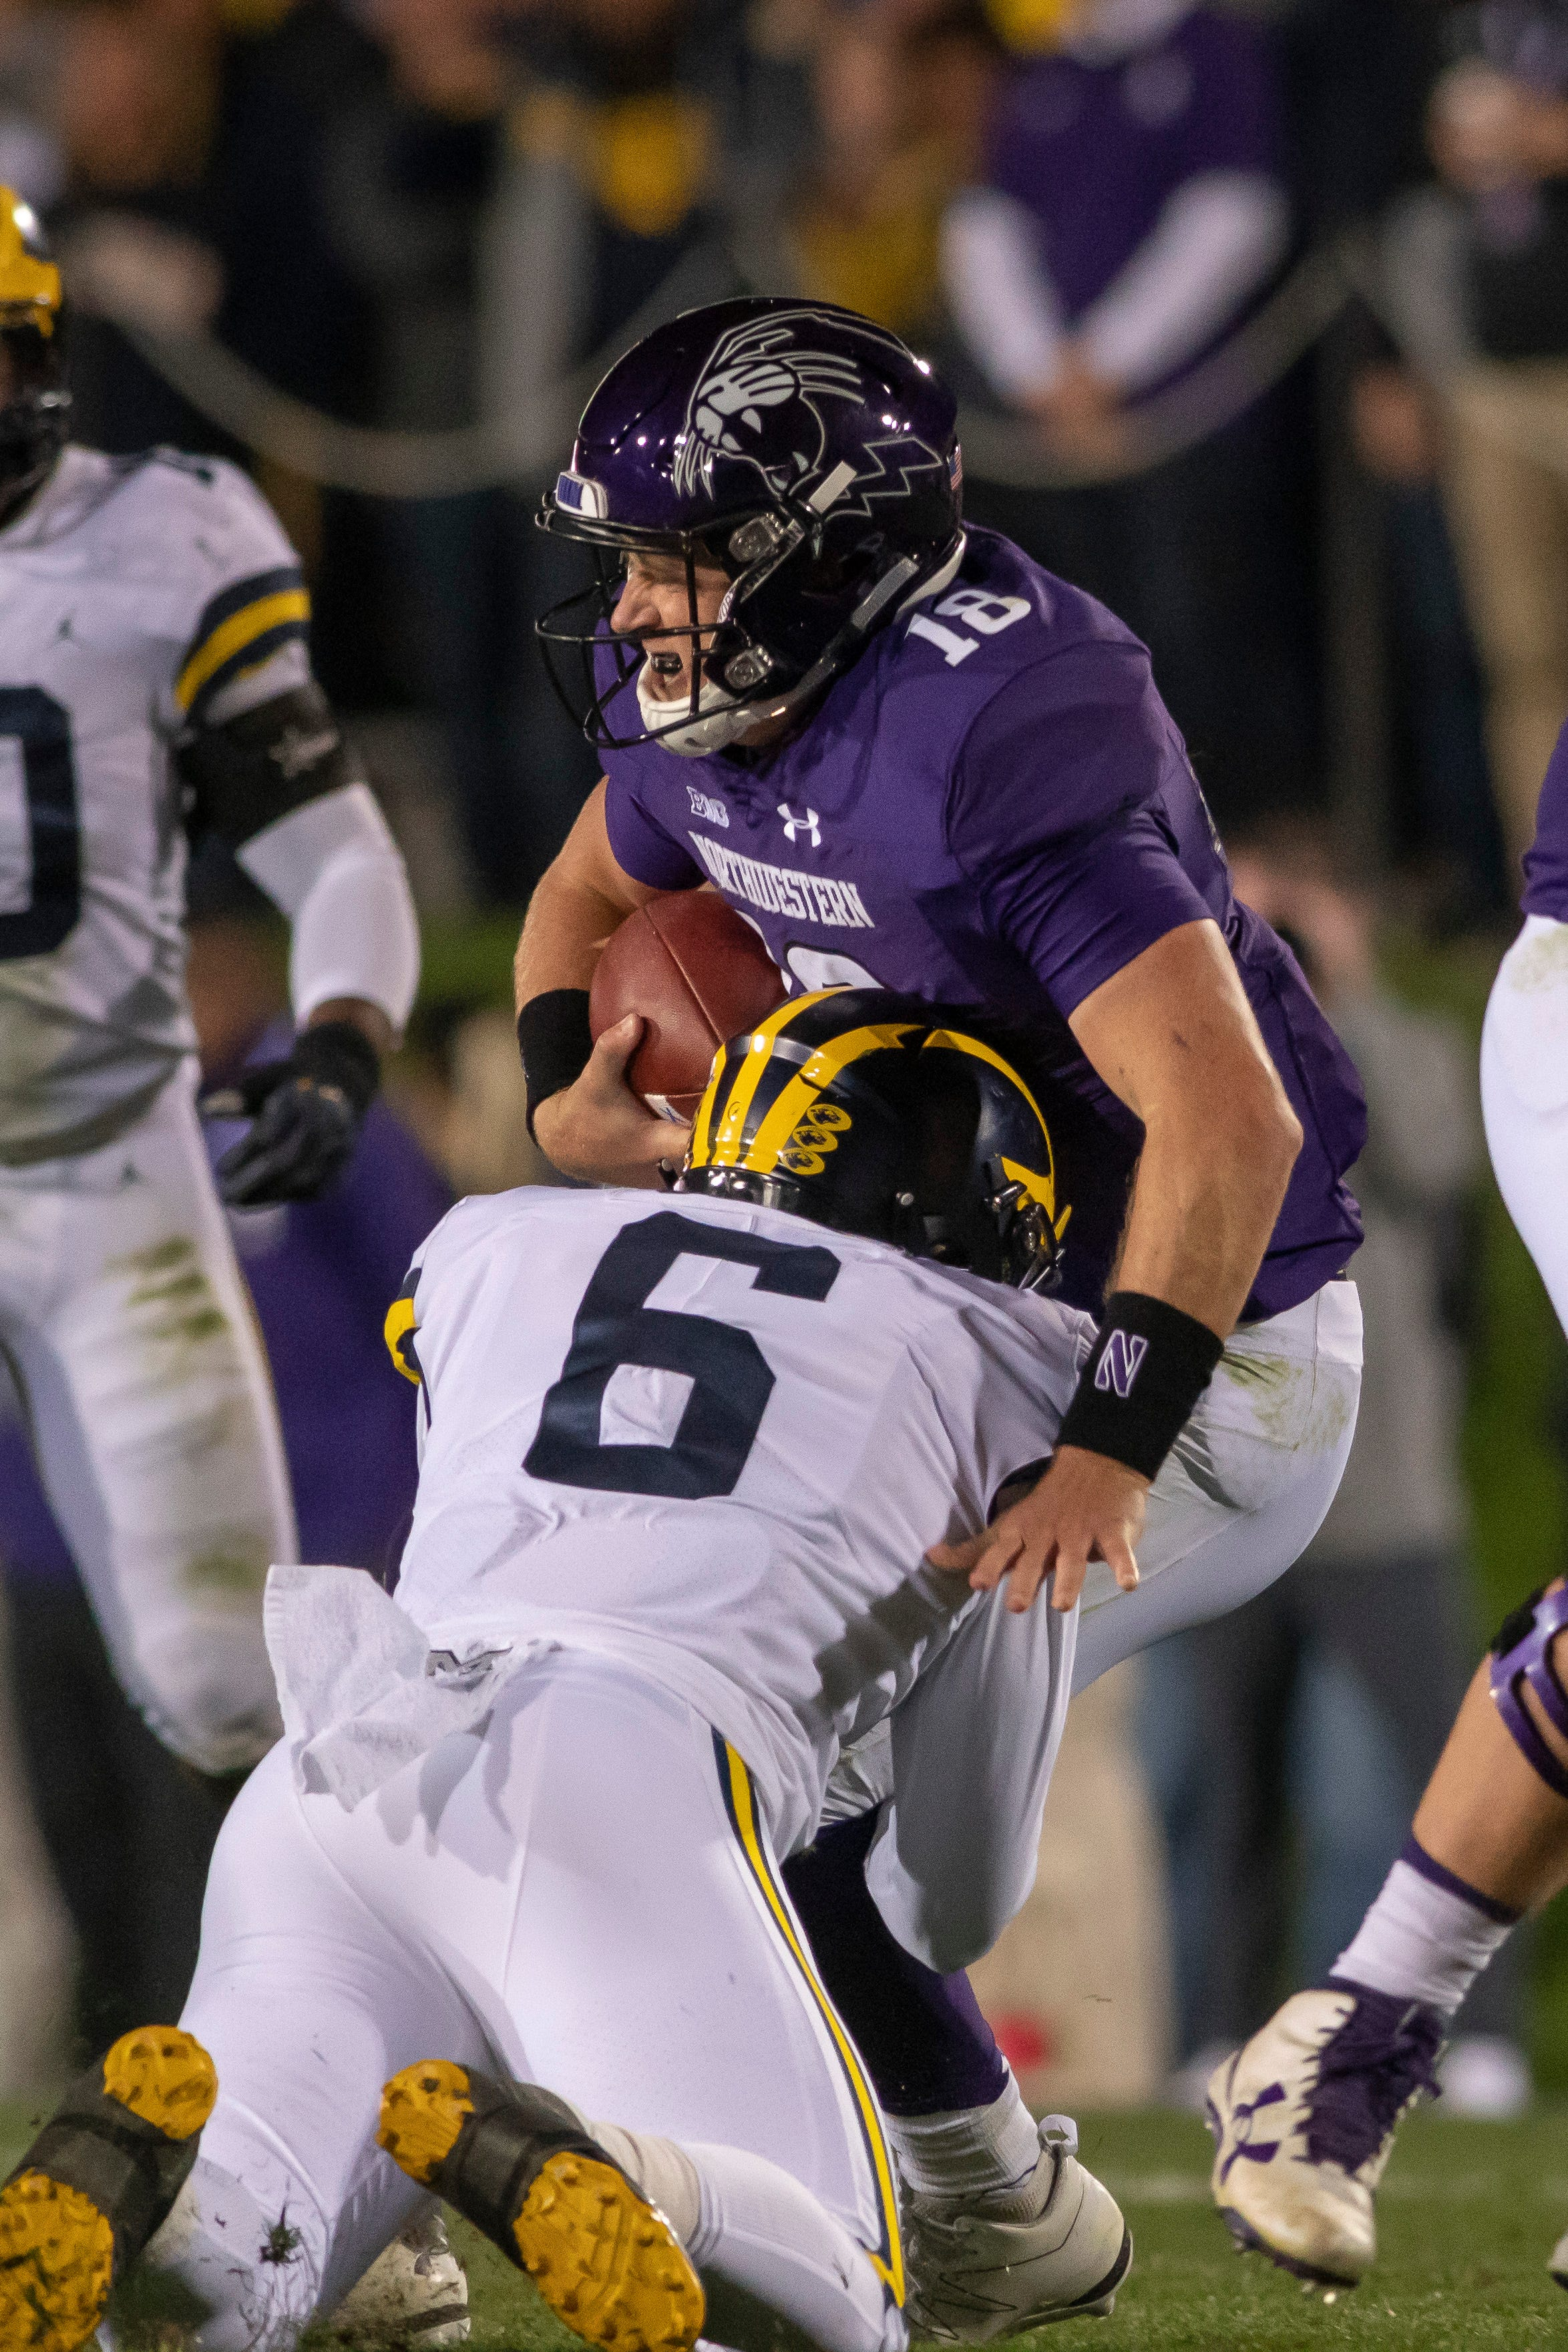 Michigan linebacker Josh Uche sacks Northwestern quarterback Clayton Thorson to seal the win for the Wolverines on the last play last week.